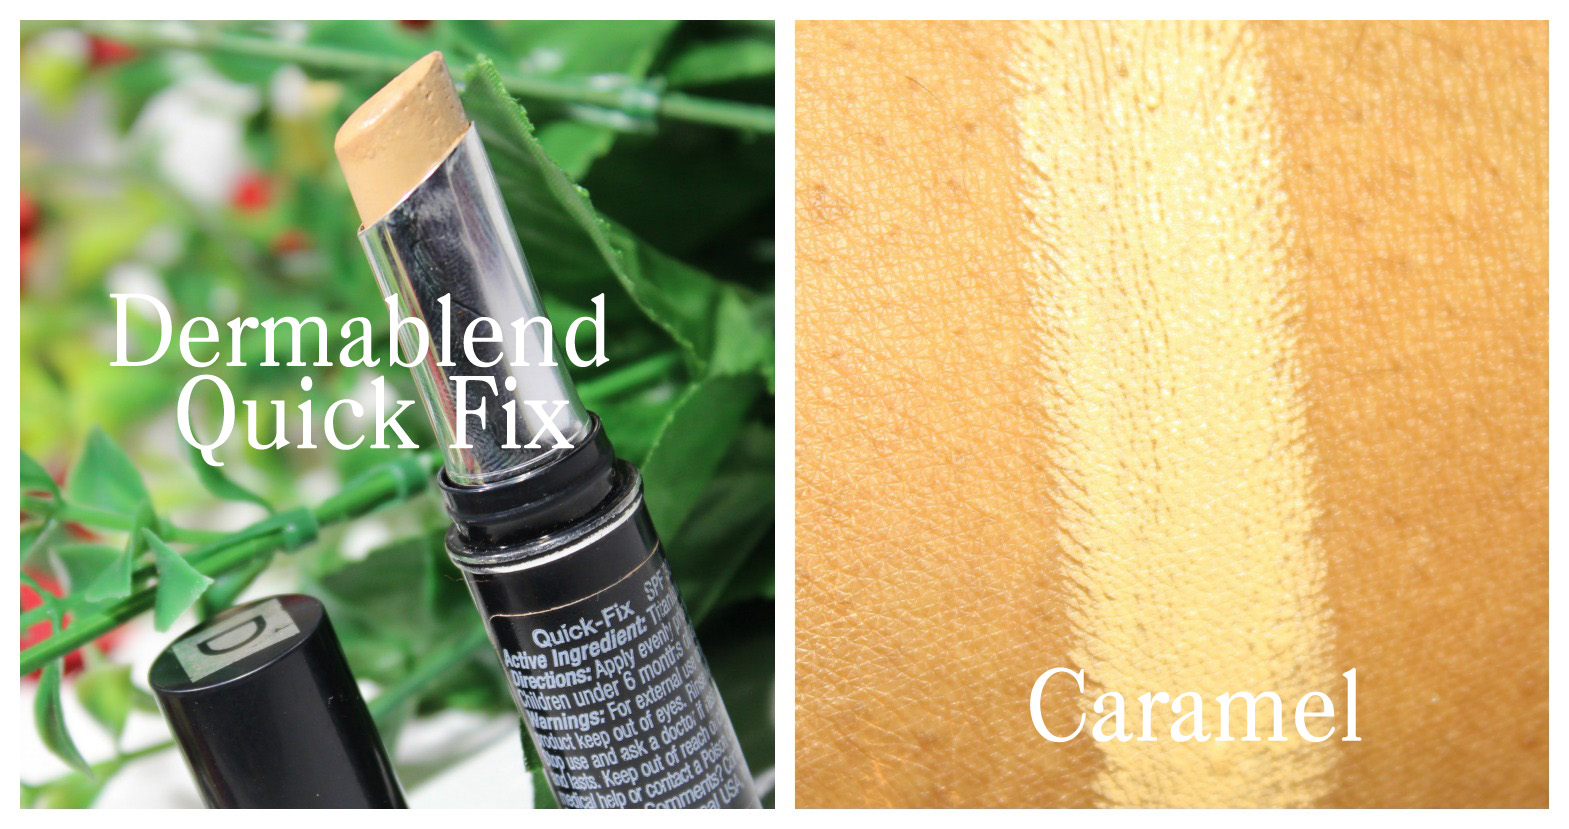 Dermablend Quick Fix in Caramel